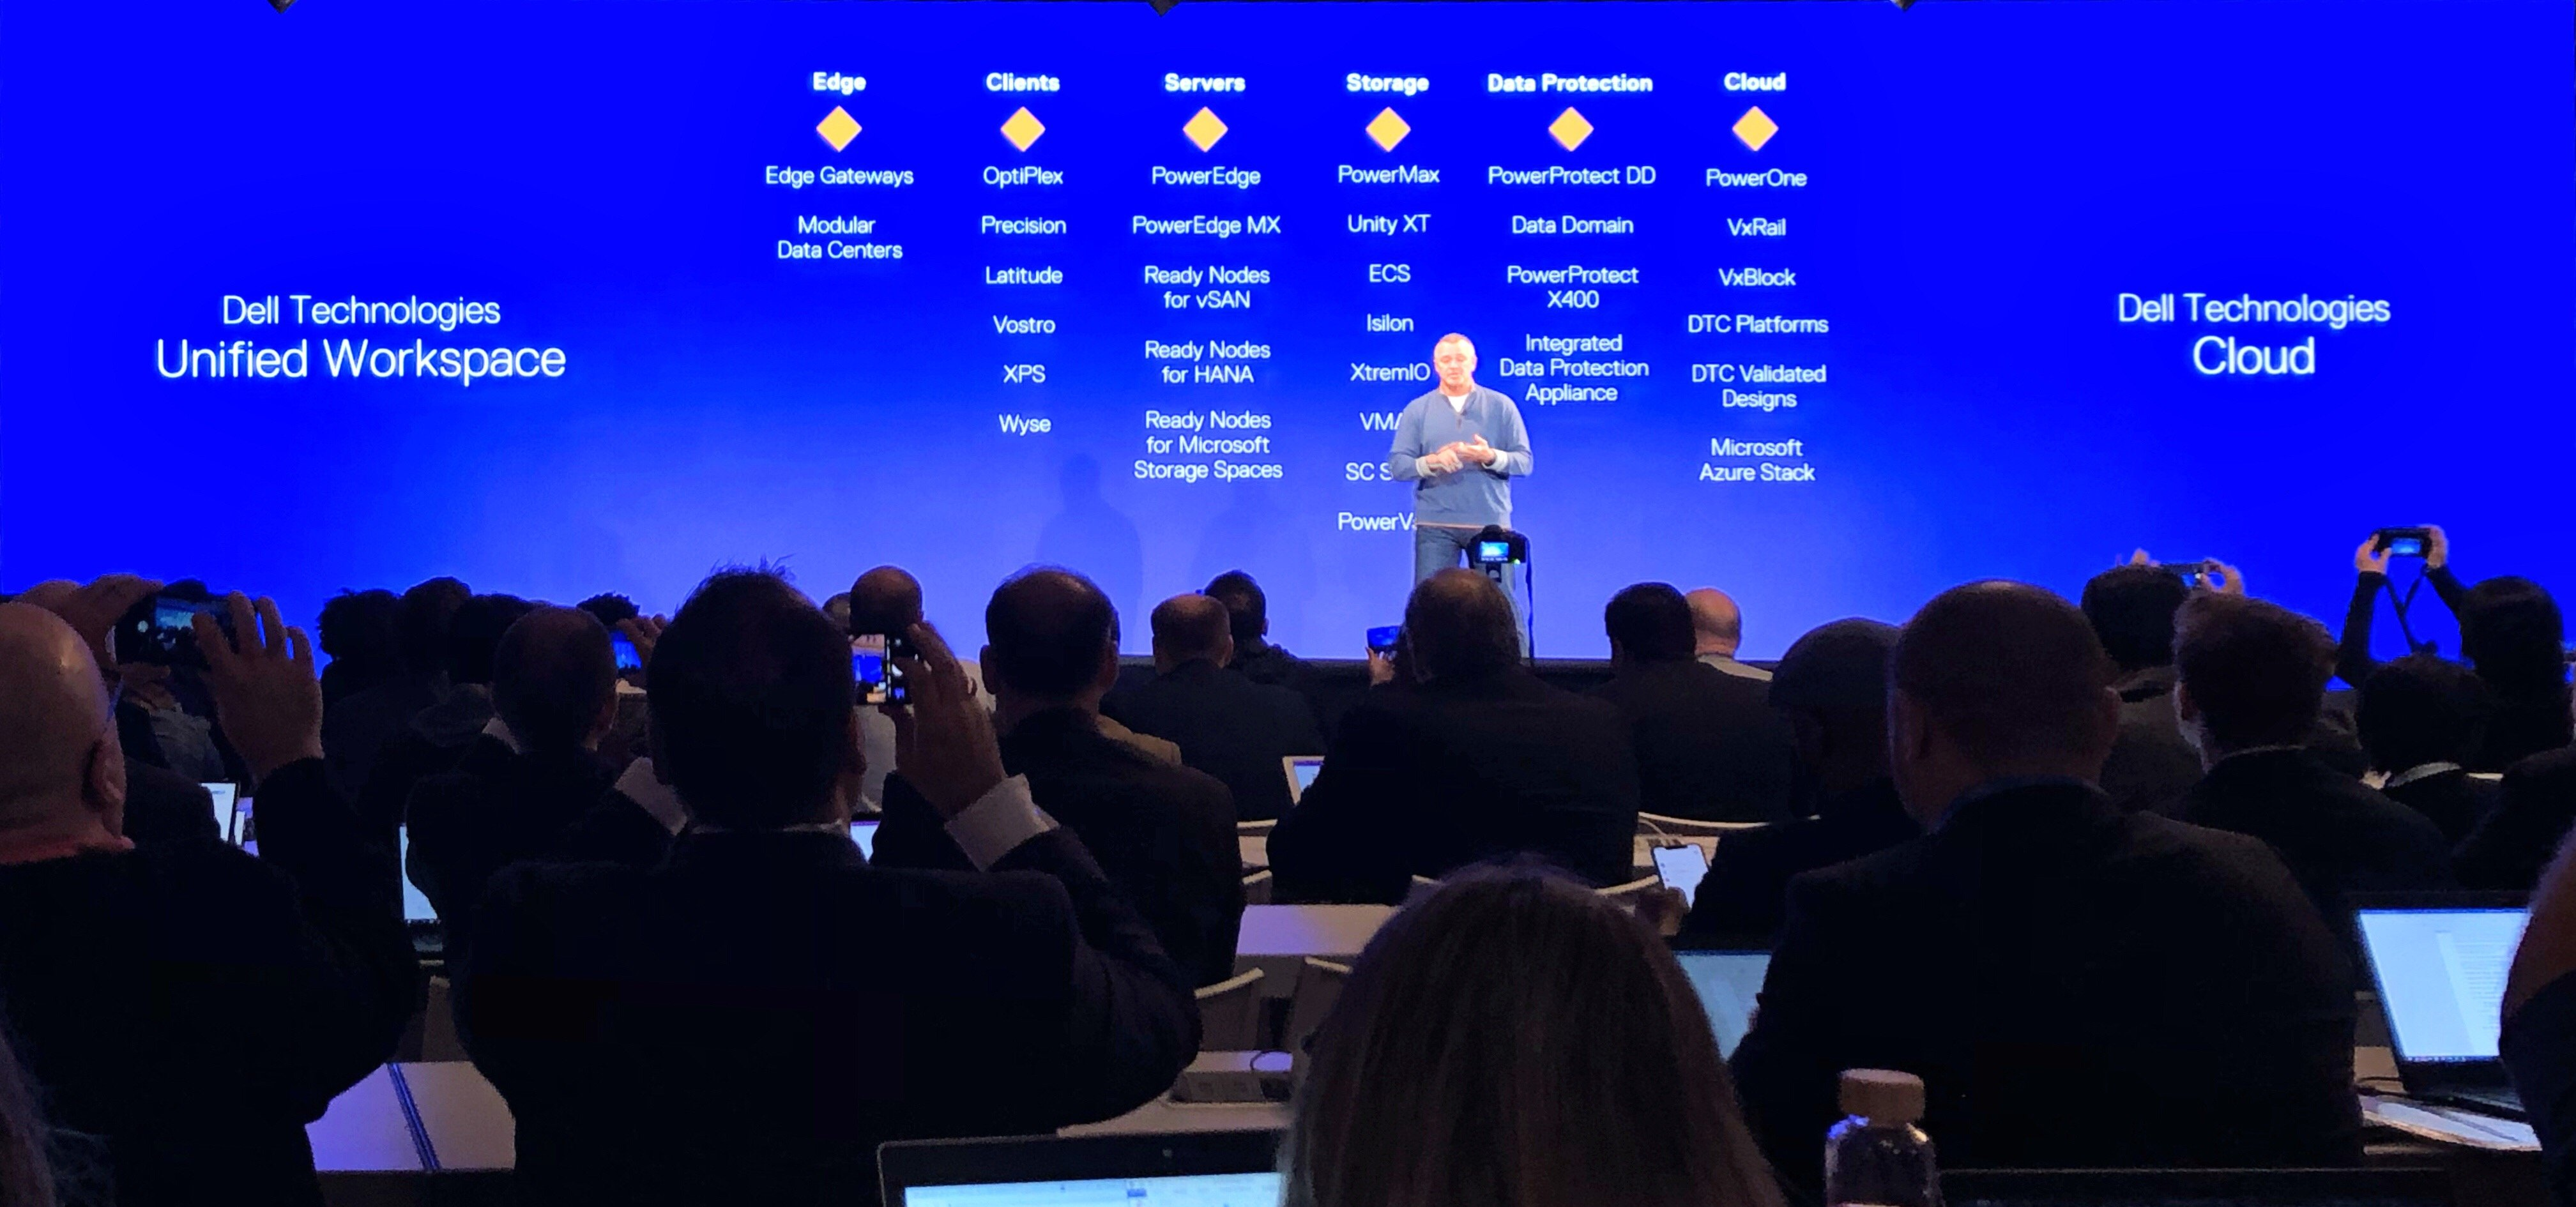 Dell Technologies On Demand: Dell's Answer to On-Prem IT Consumption